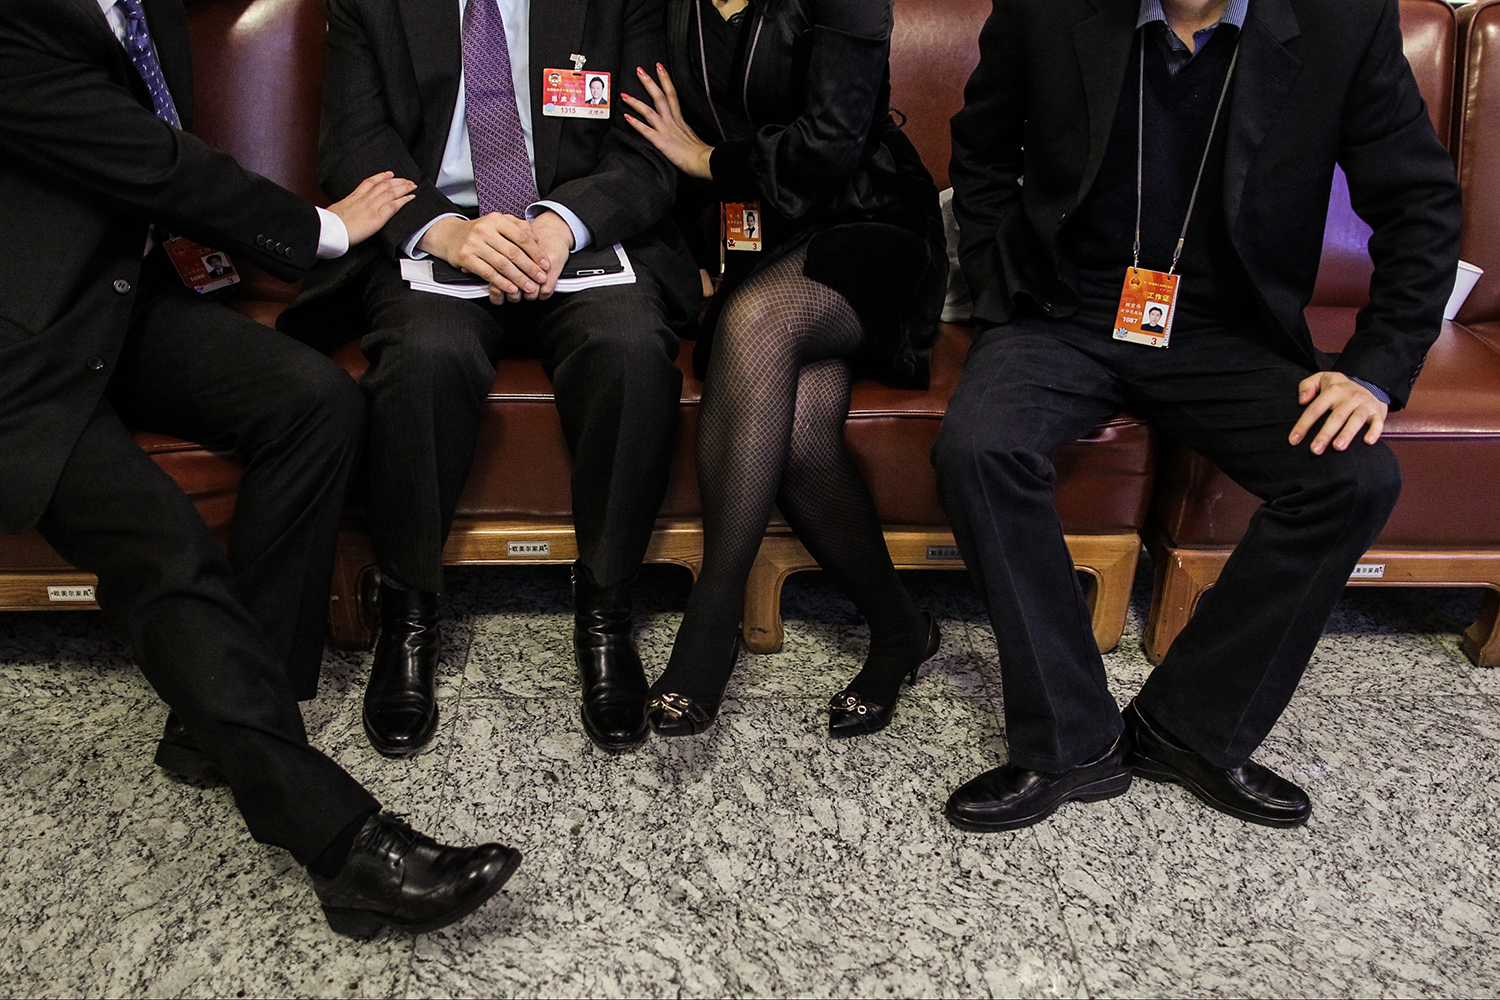 During a break between meetings, a female staffer talks with a member of the CPPCC, second from left, and two male staffers, March 5, 2011, on the second floor of the Great Hall of the People.